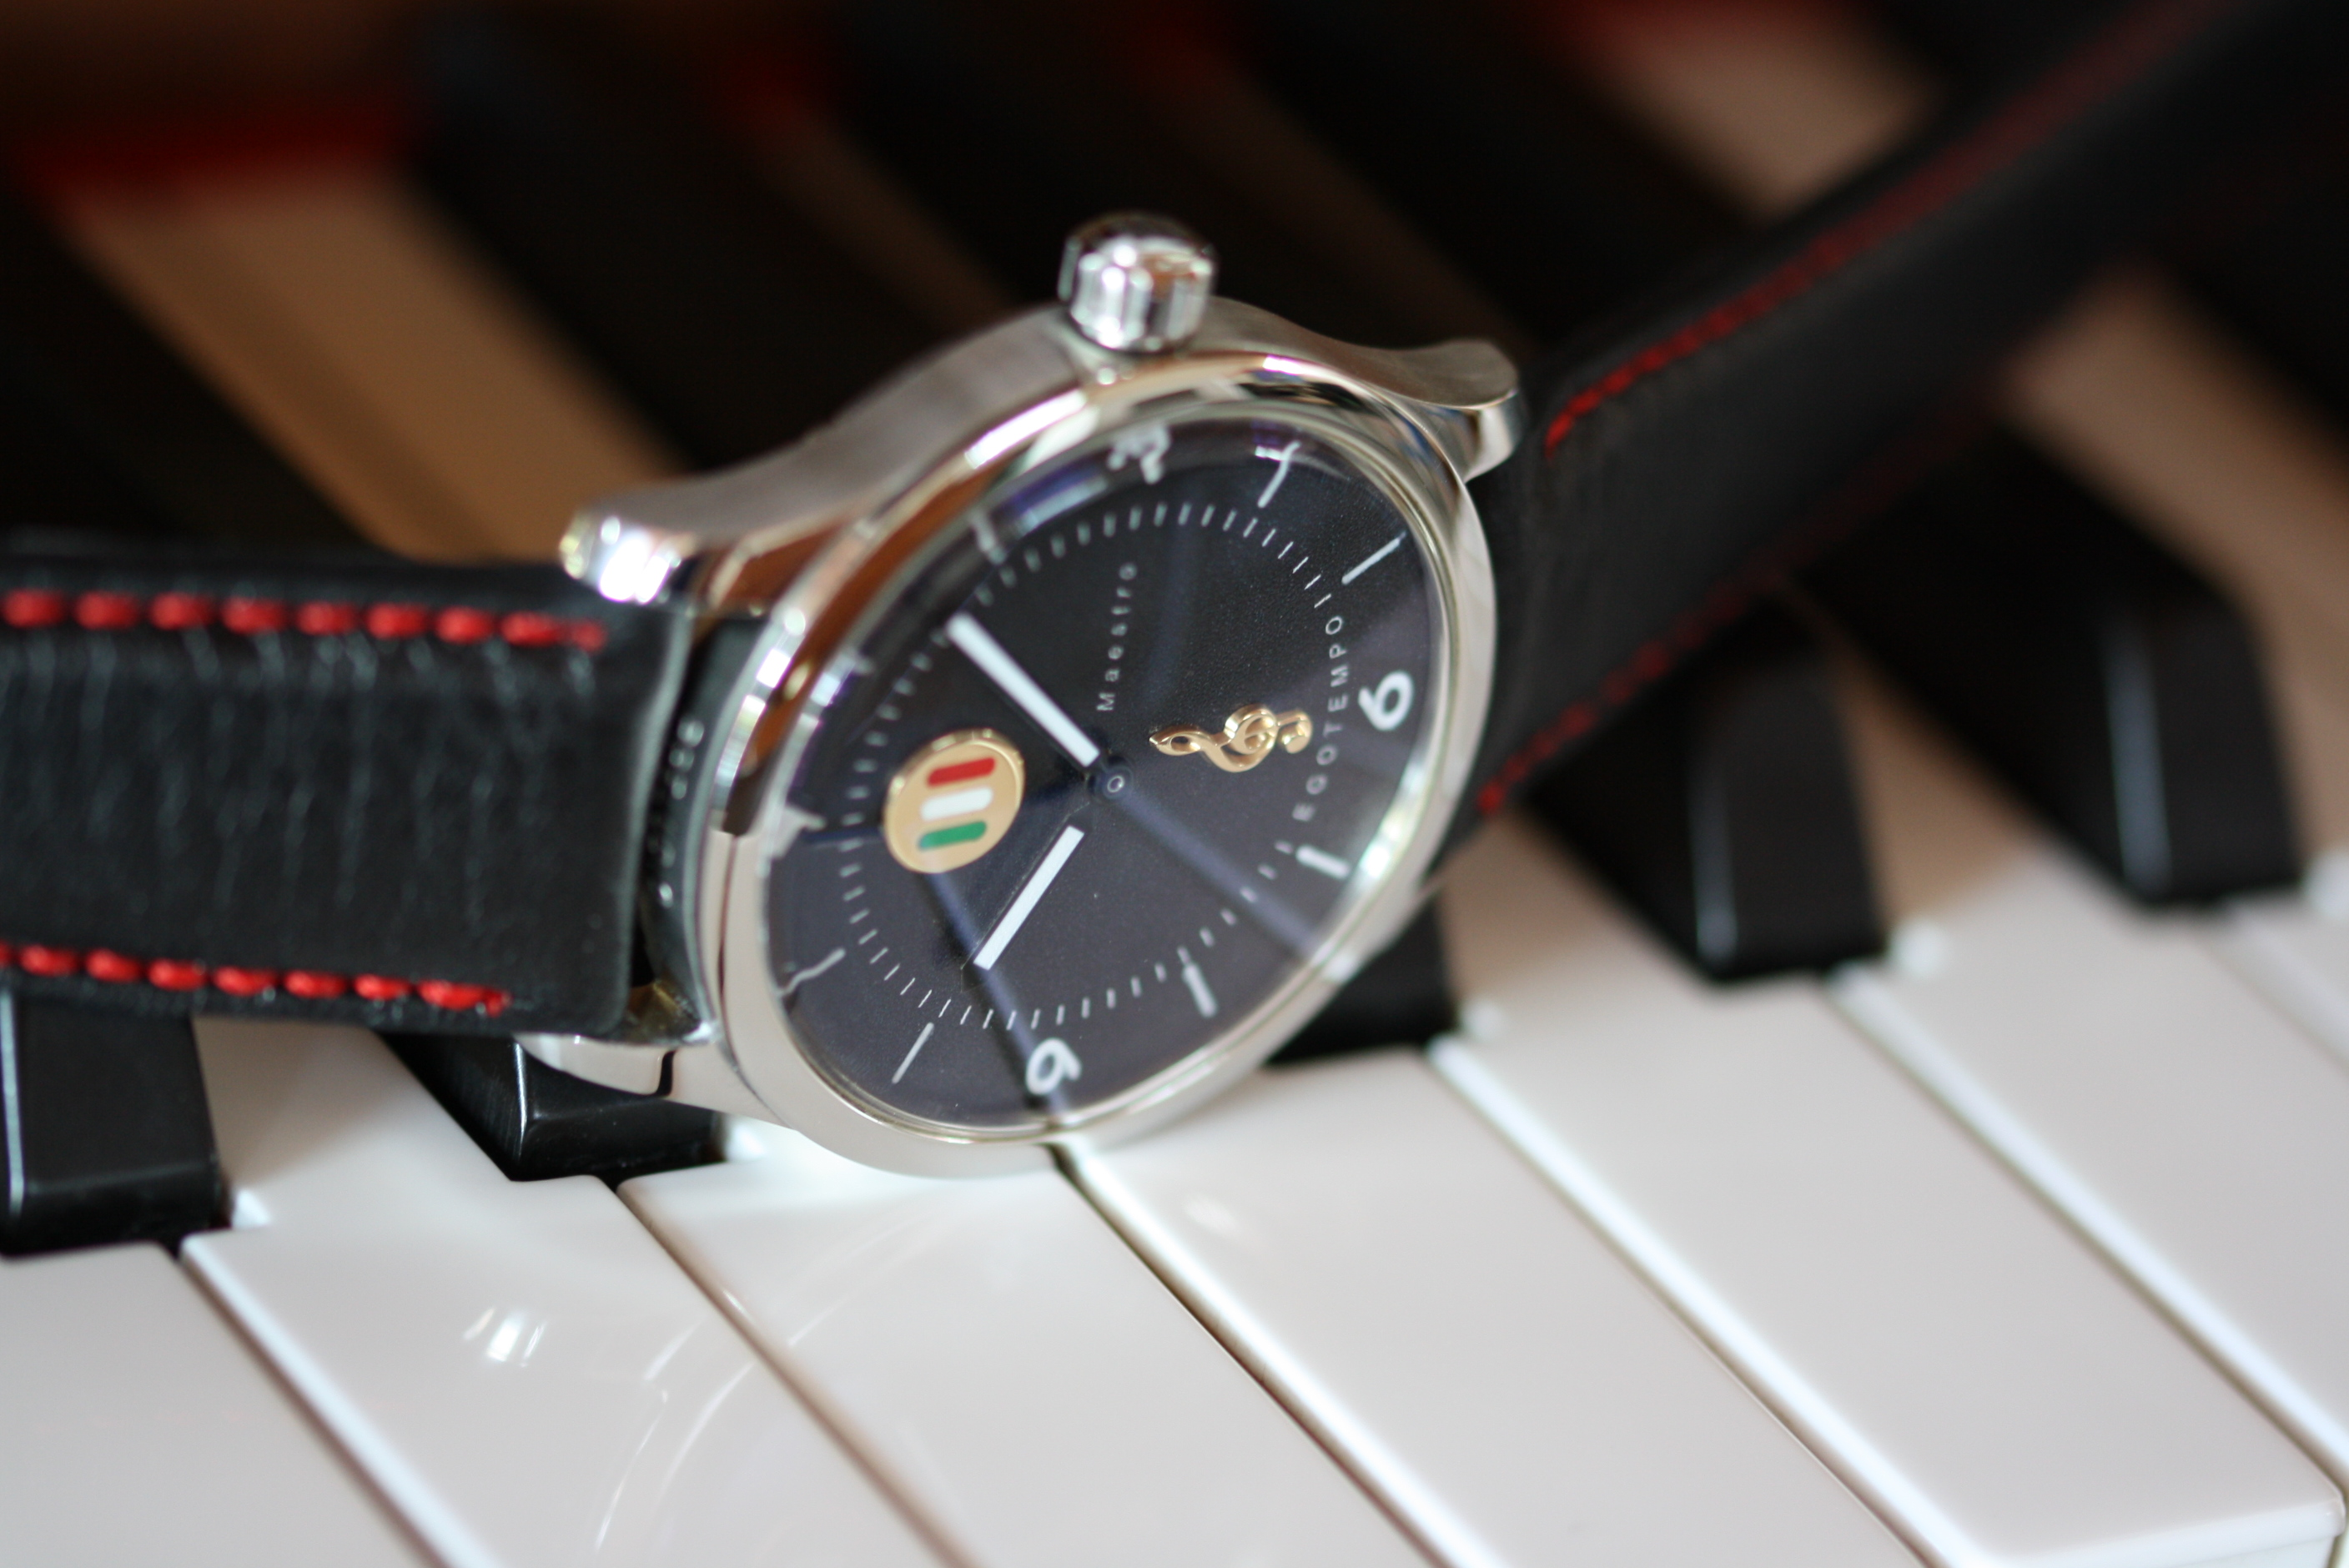 toccata black pkt stp the new rw conductor with and weil watches blog en raymond rvb femininity music